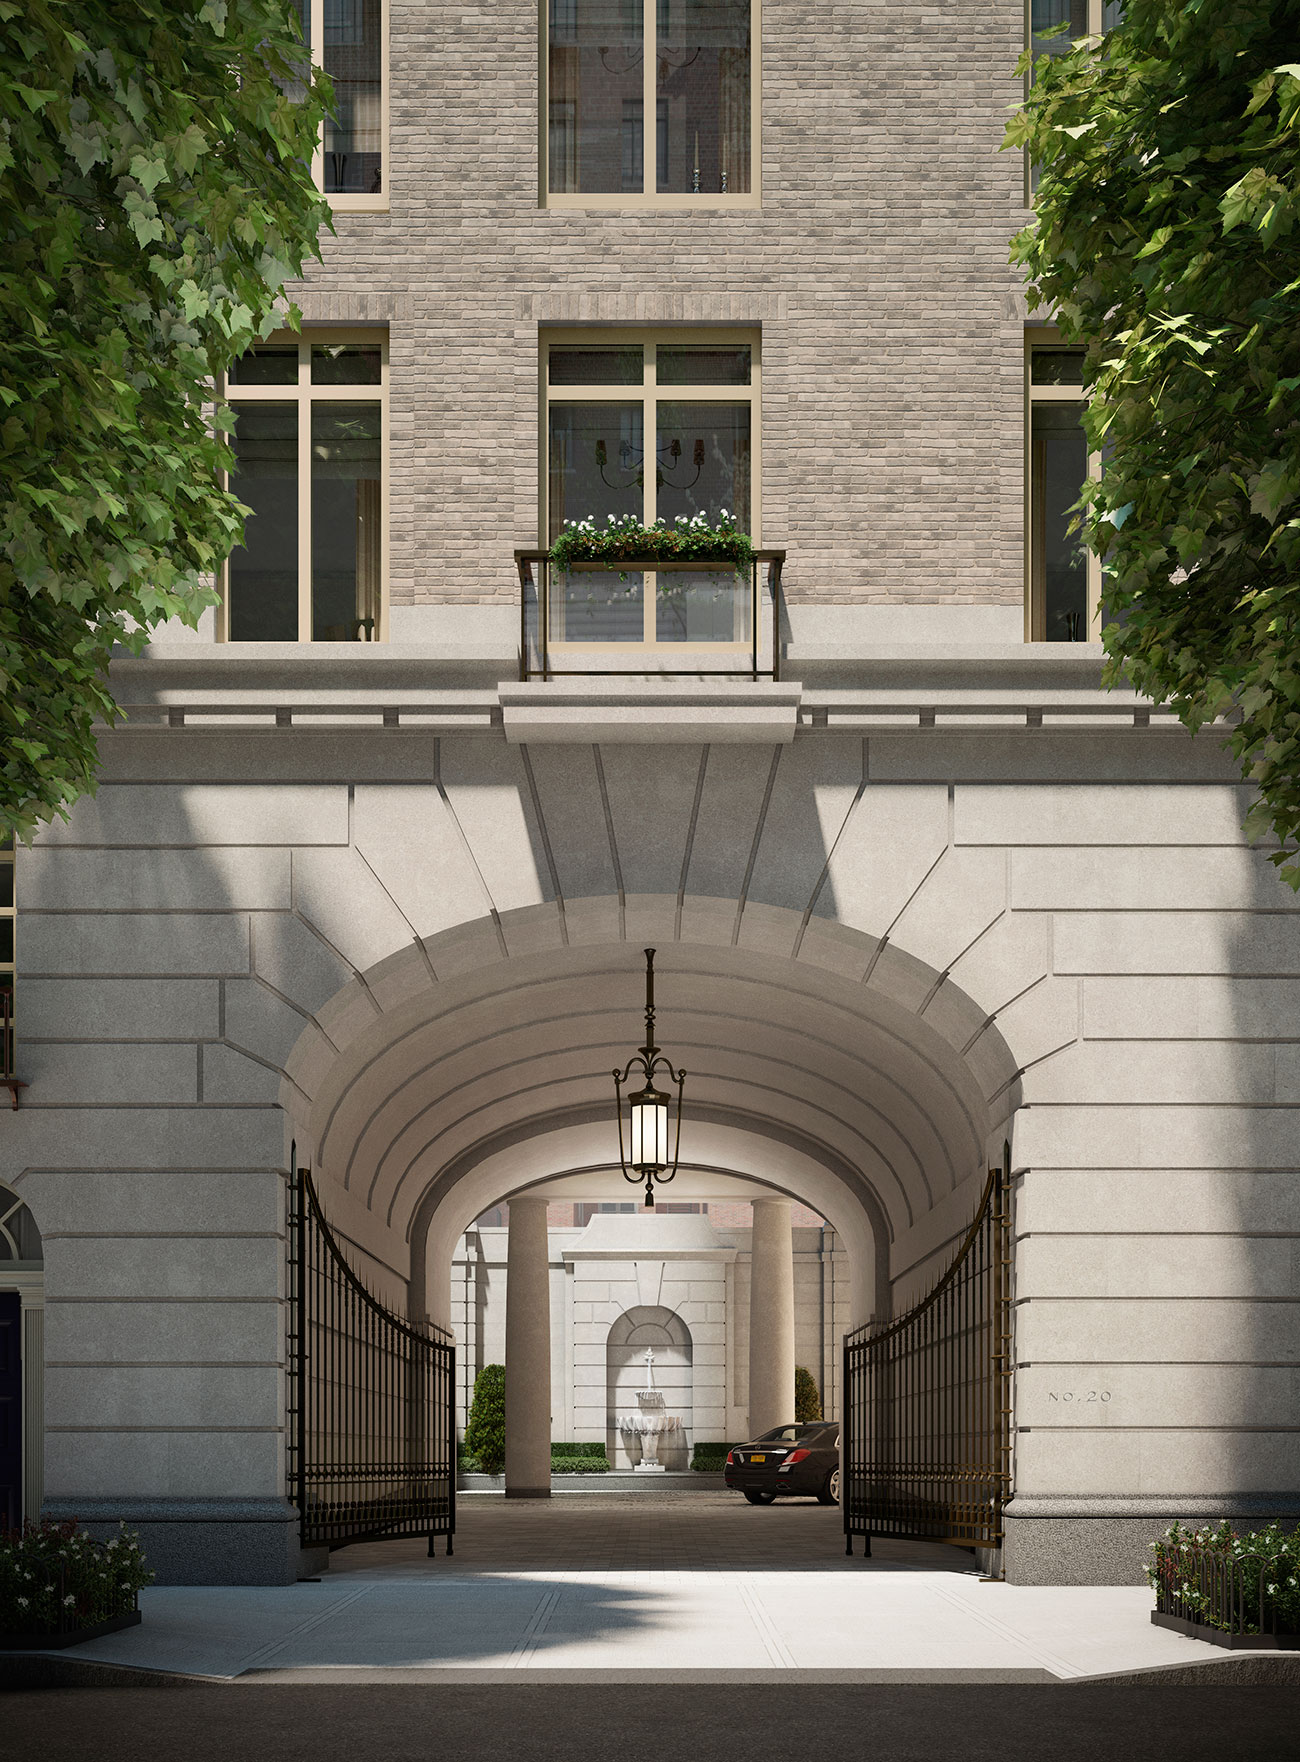 Rendering of the porte-cochère at 20 East End Avenue